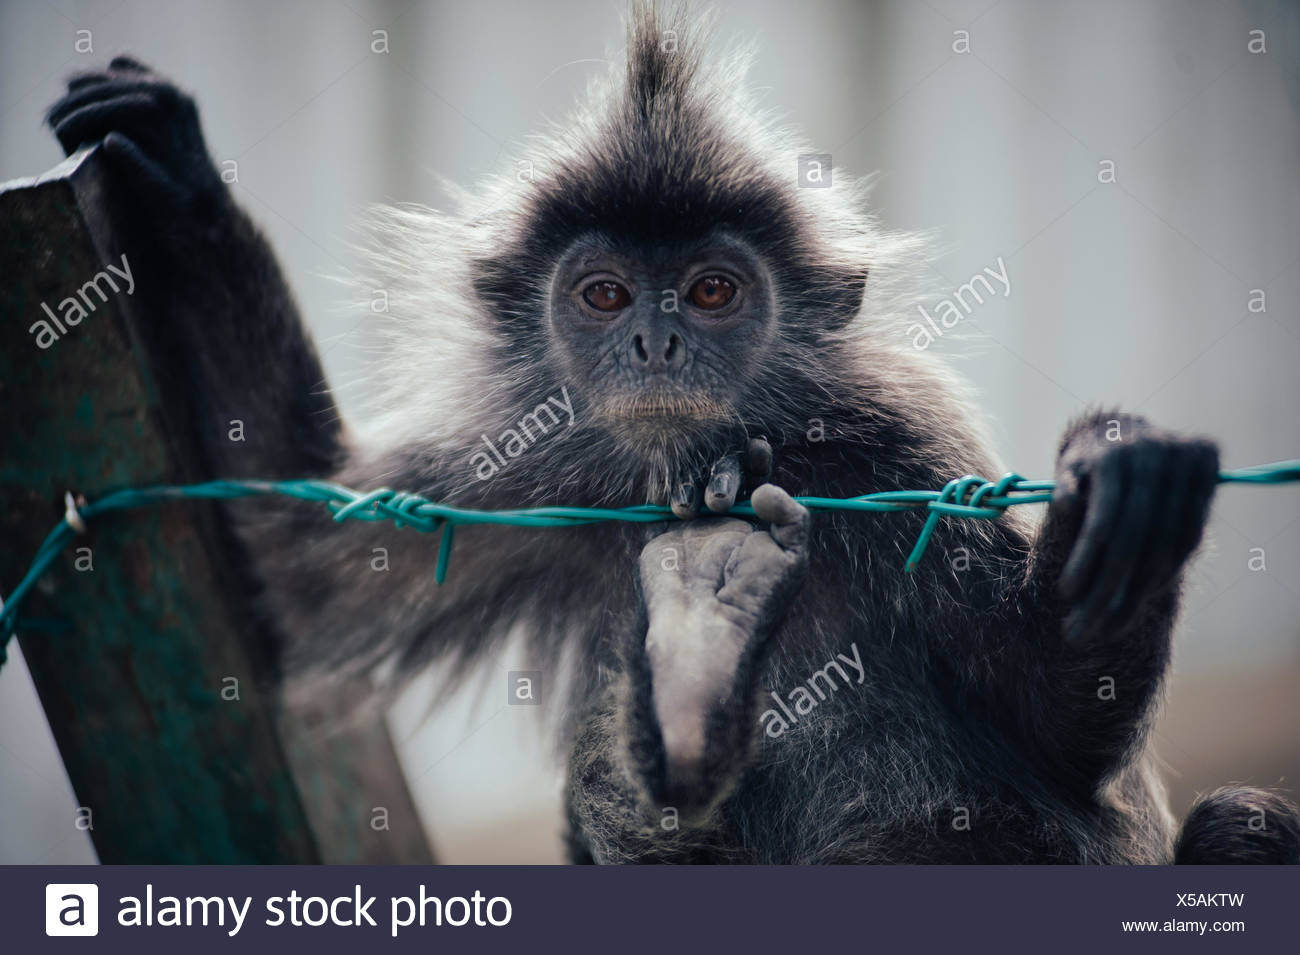 Close-Up Of Monkey Hanging On Barb Wire - Stock Image